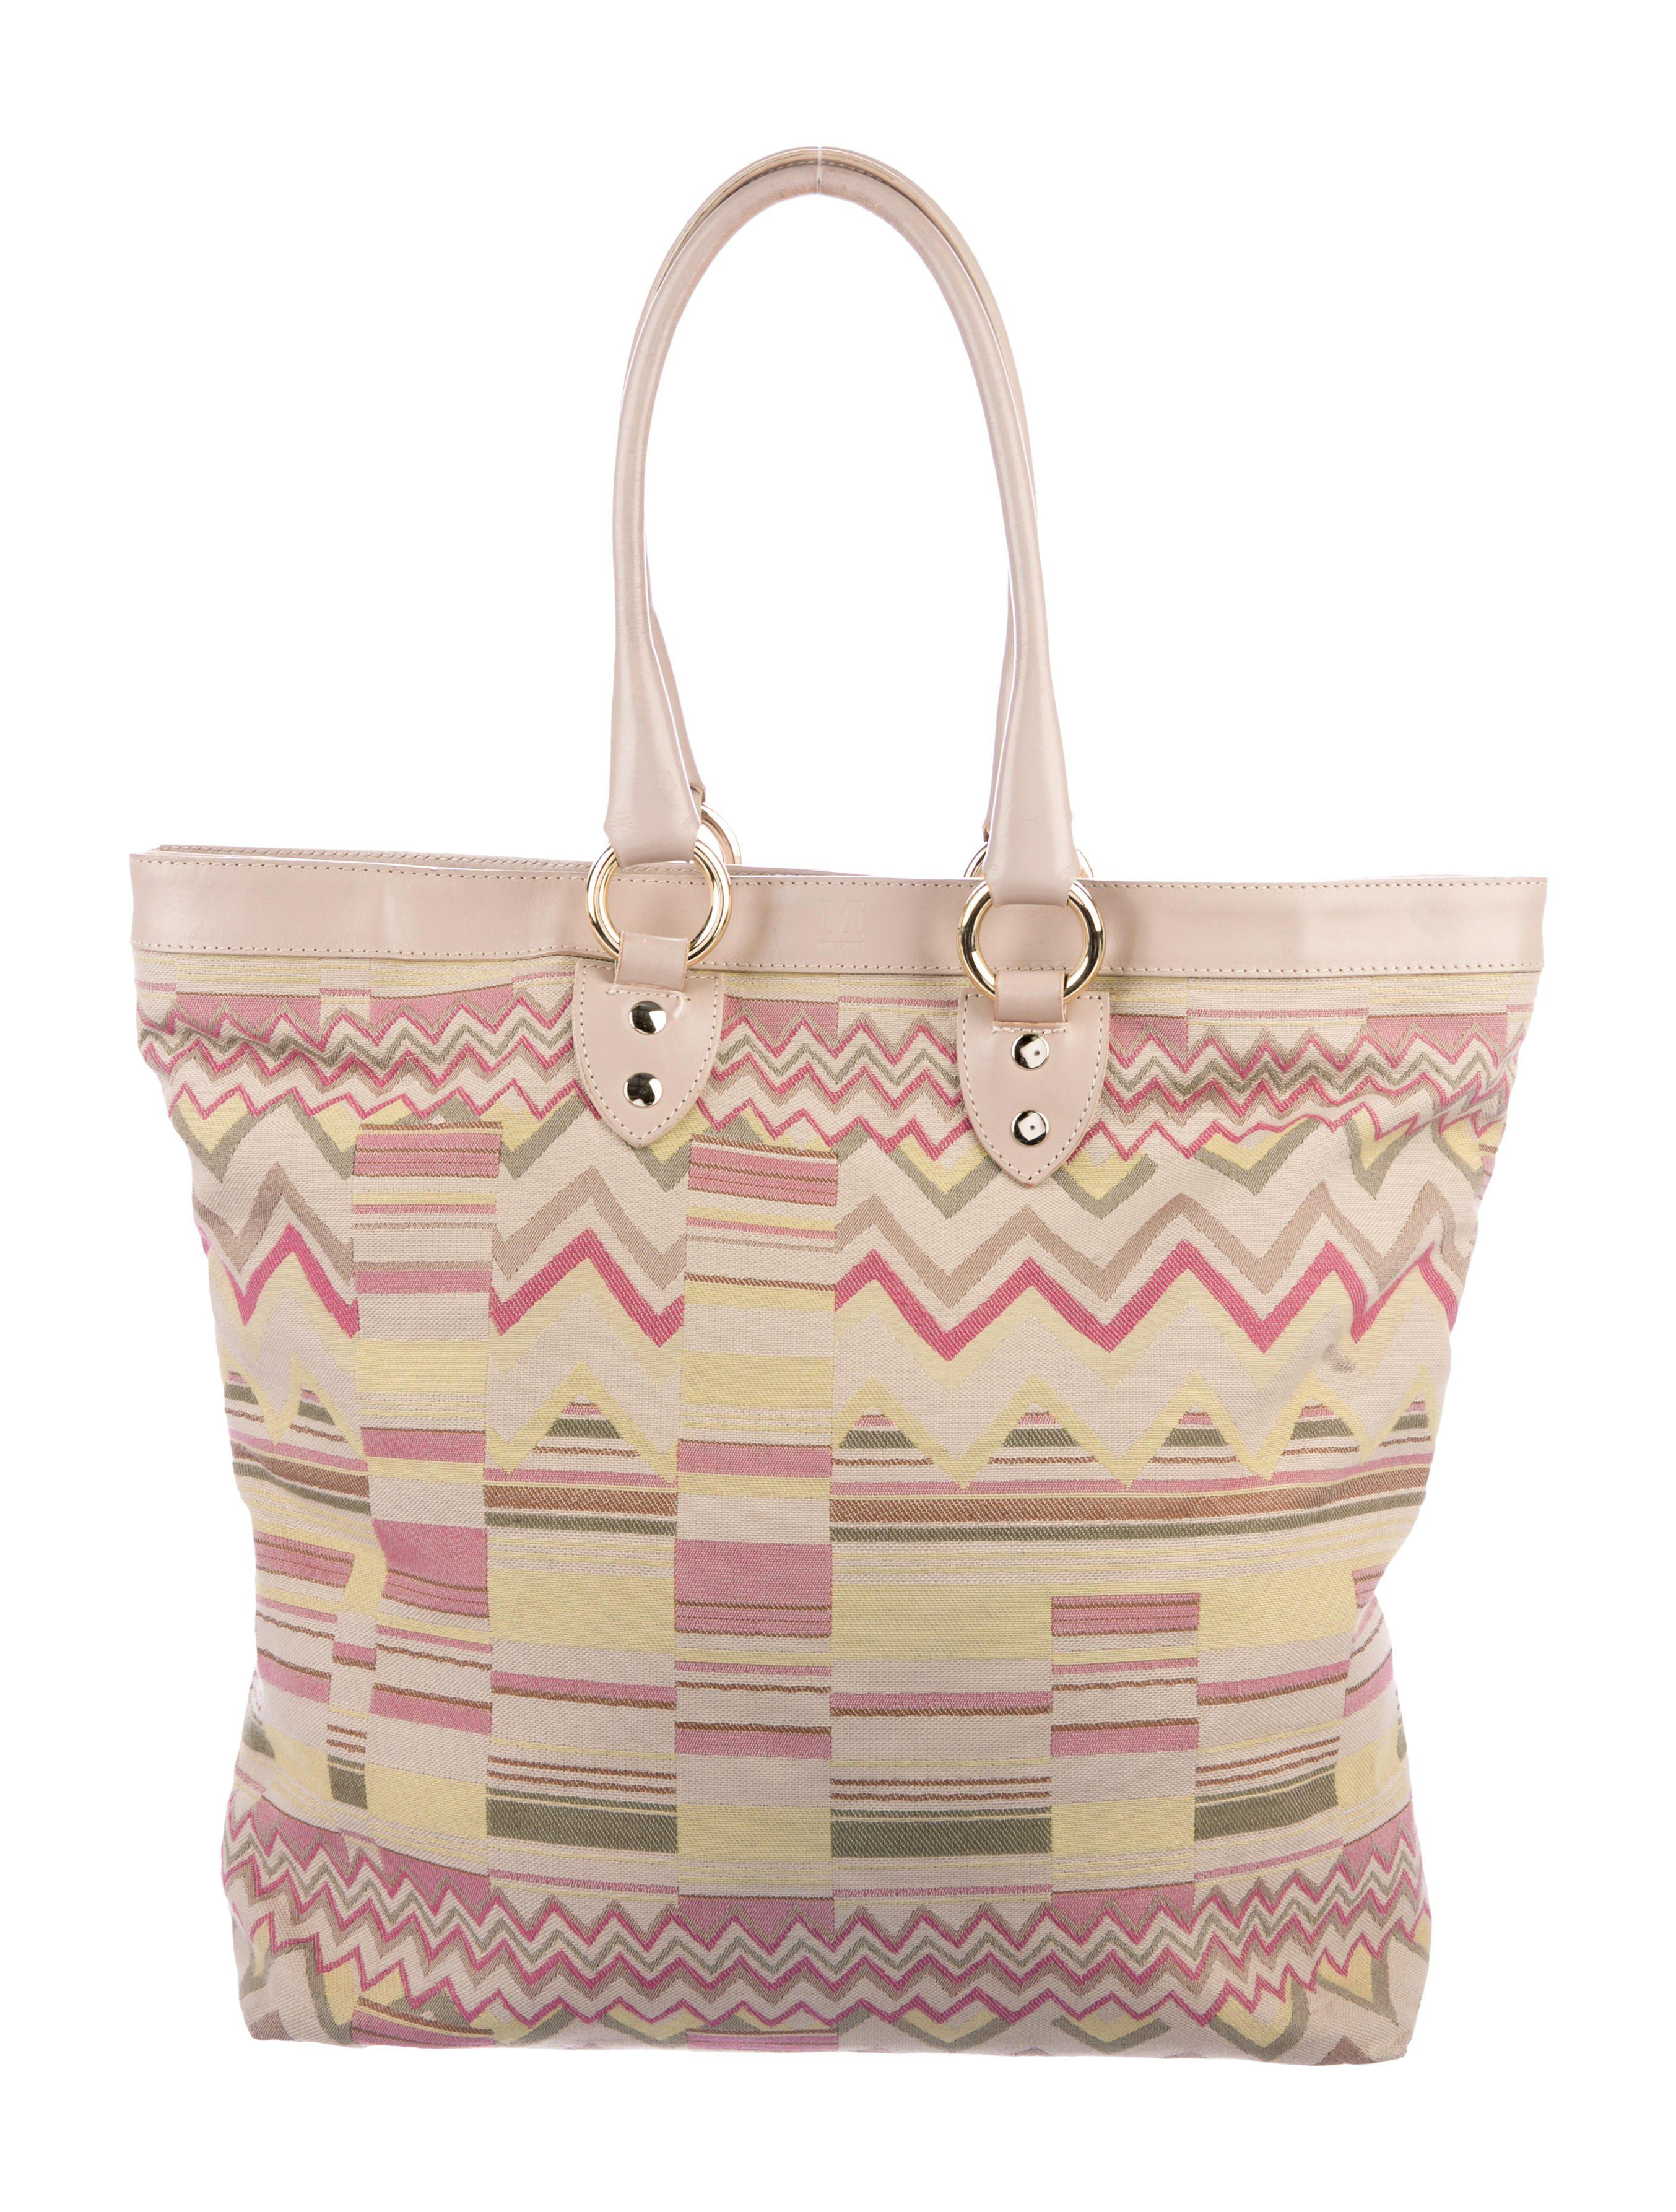 18510f3ae13c Lyst - M Missoni Leather-trimmed Woven Tote Beige in Metallic